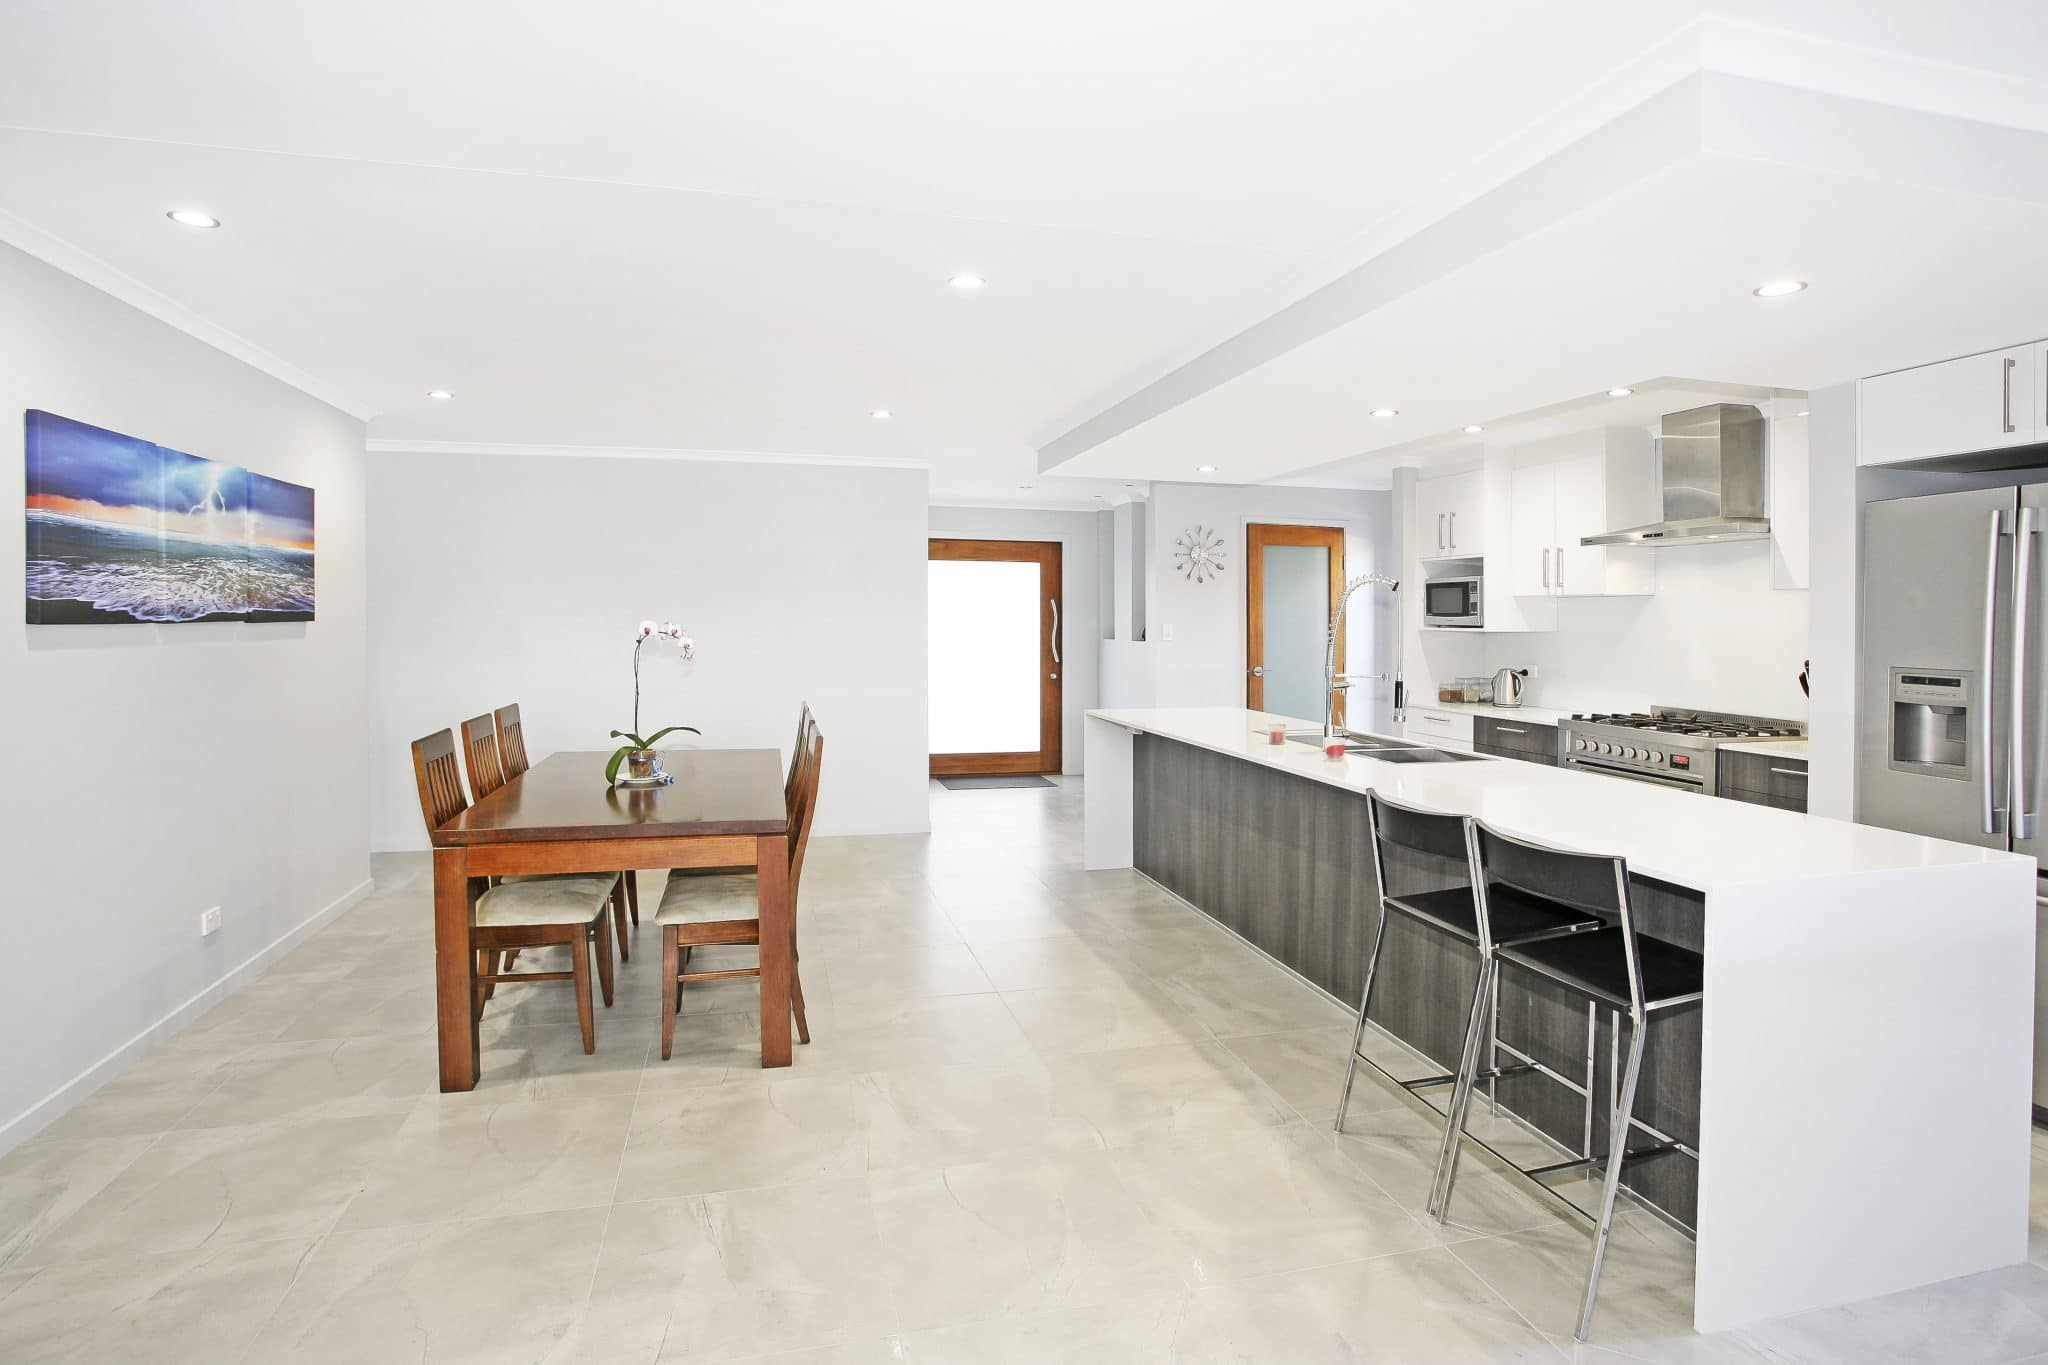 14 Cinnamon Av, Coolum Onsite Auction 10am Saturday 6th Feb 2016